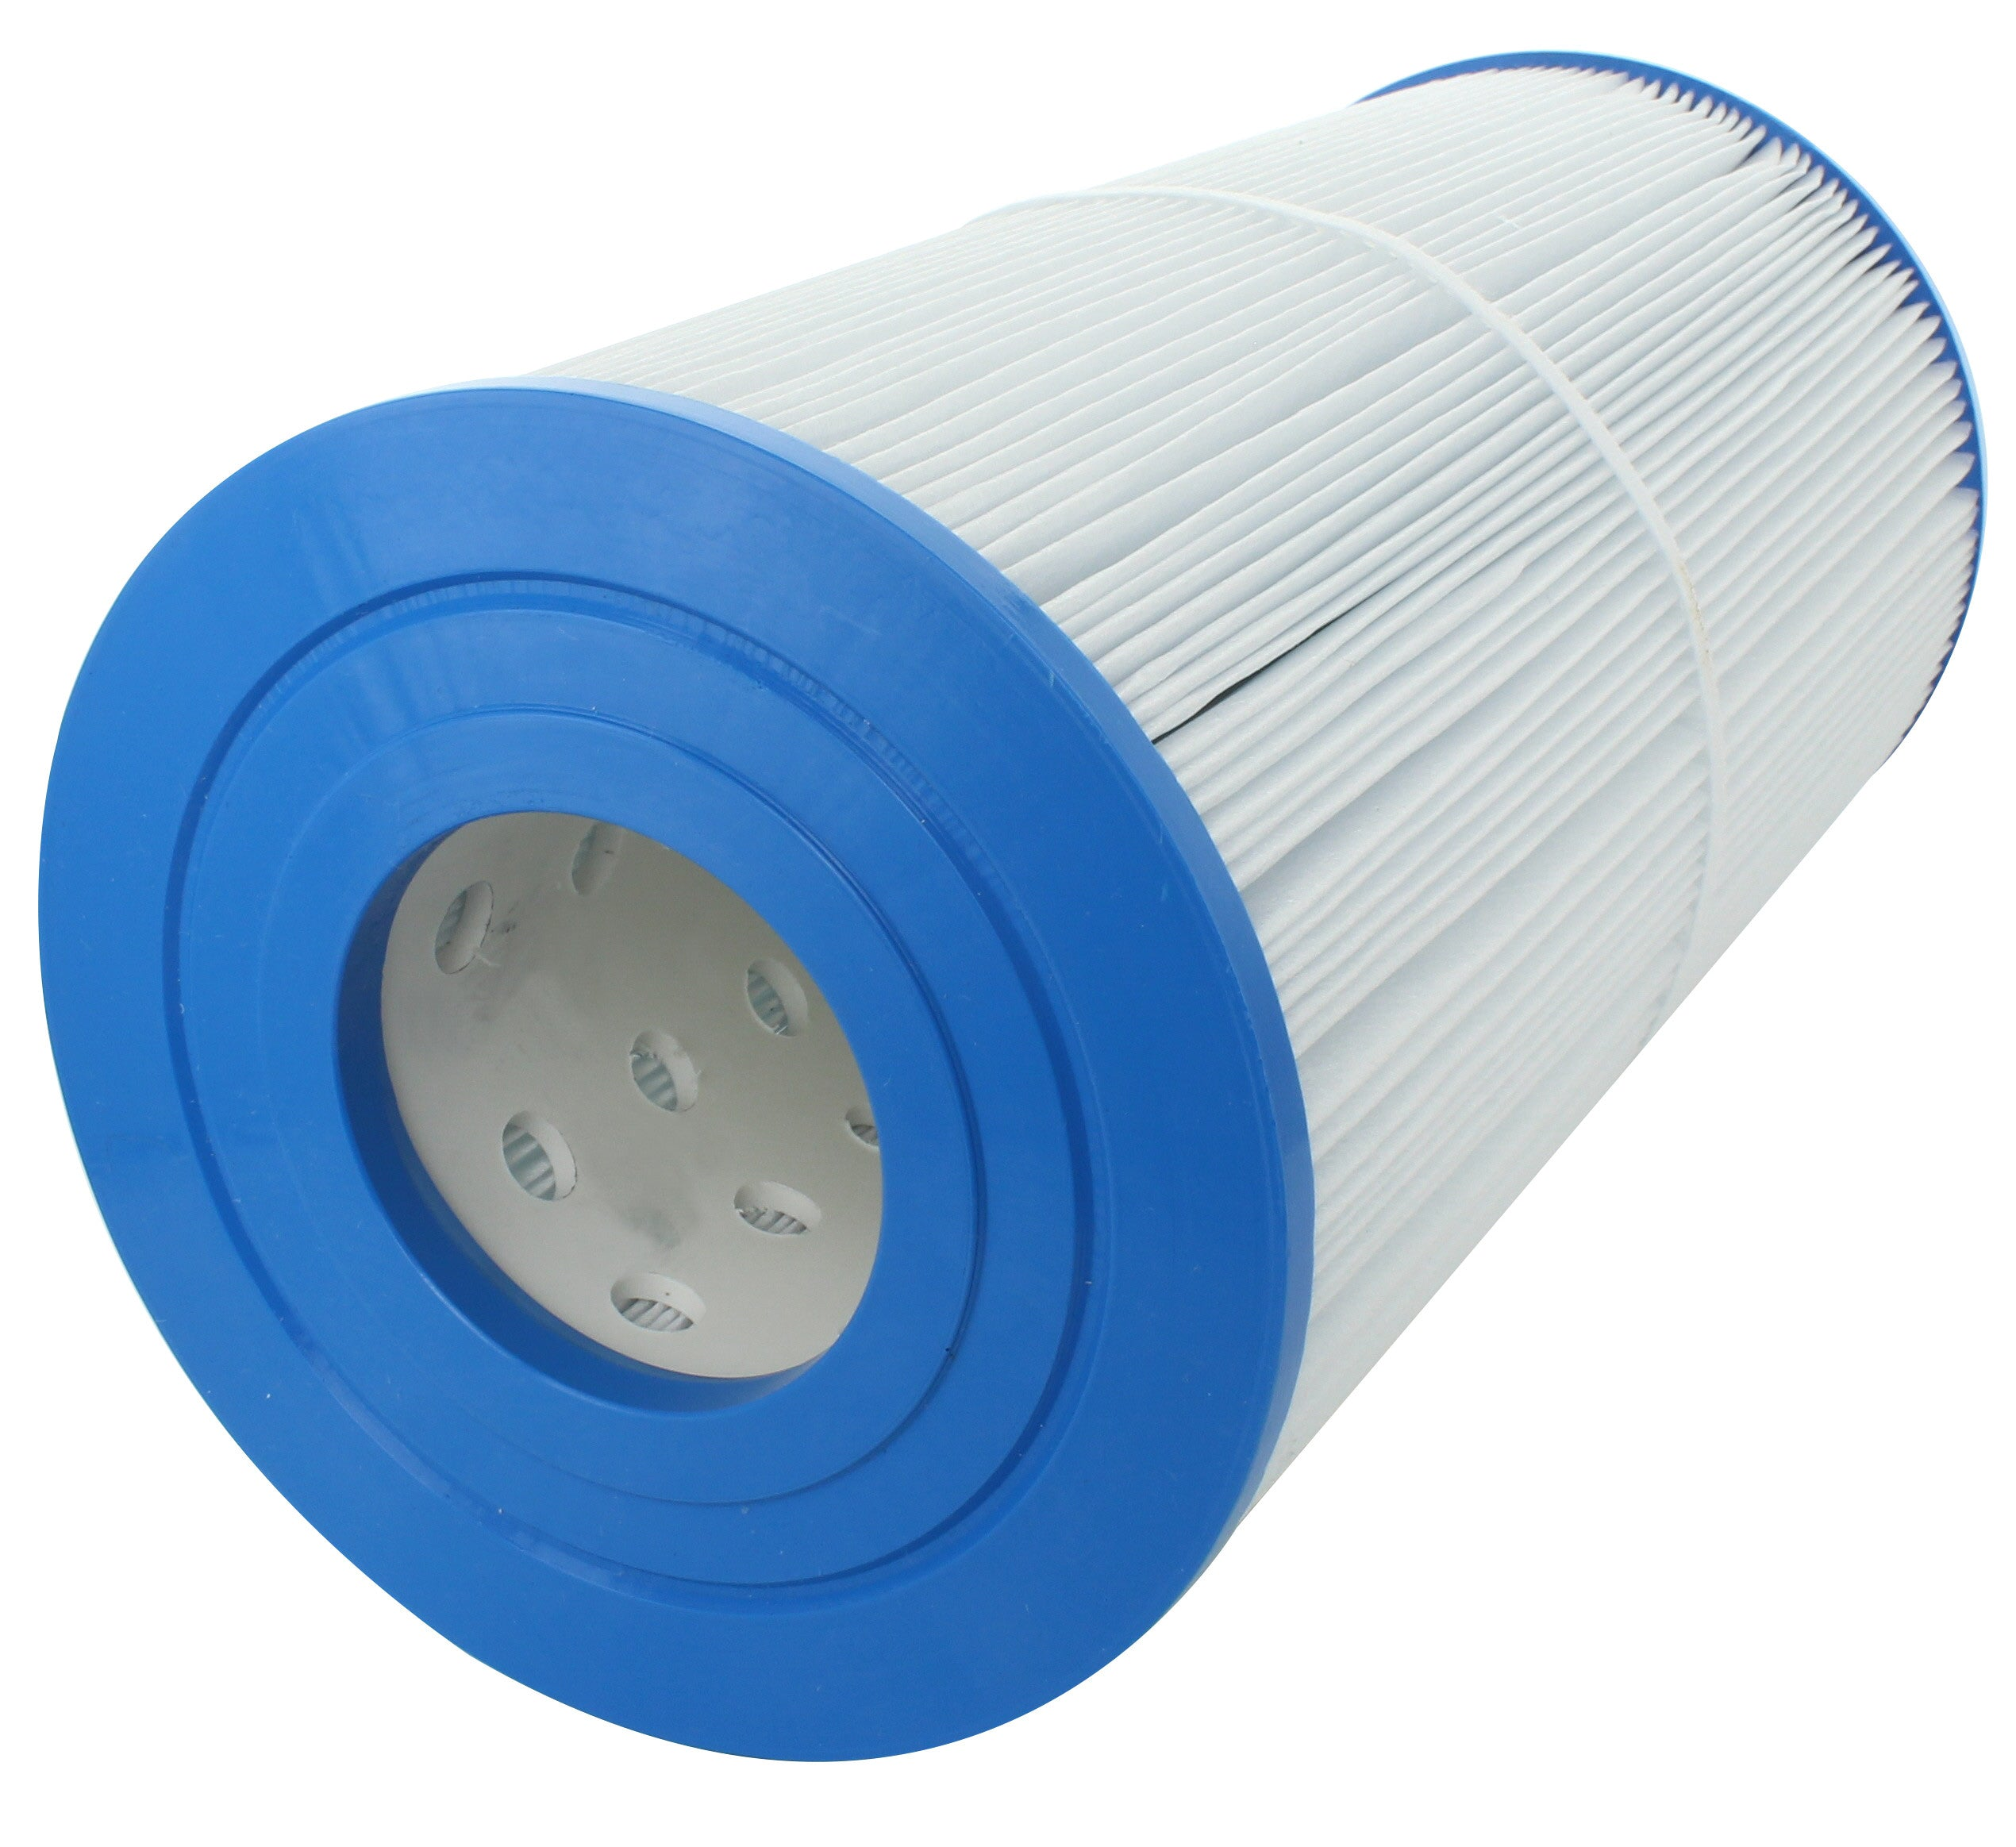 Replaces Unicel C-7458, Pleatco PA56SV • Pool & Spa Filter Cartridge-Filter Cartridge-FilterDeal.com